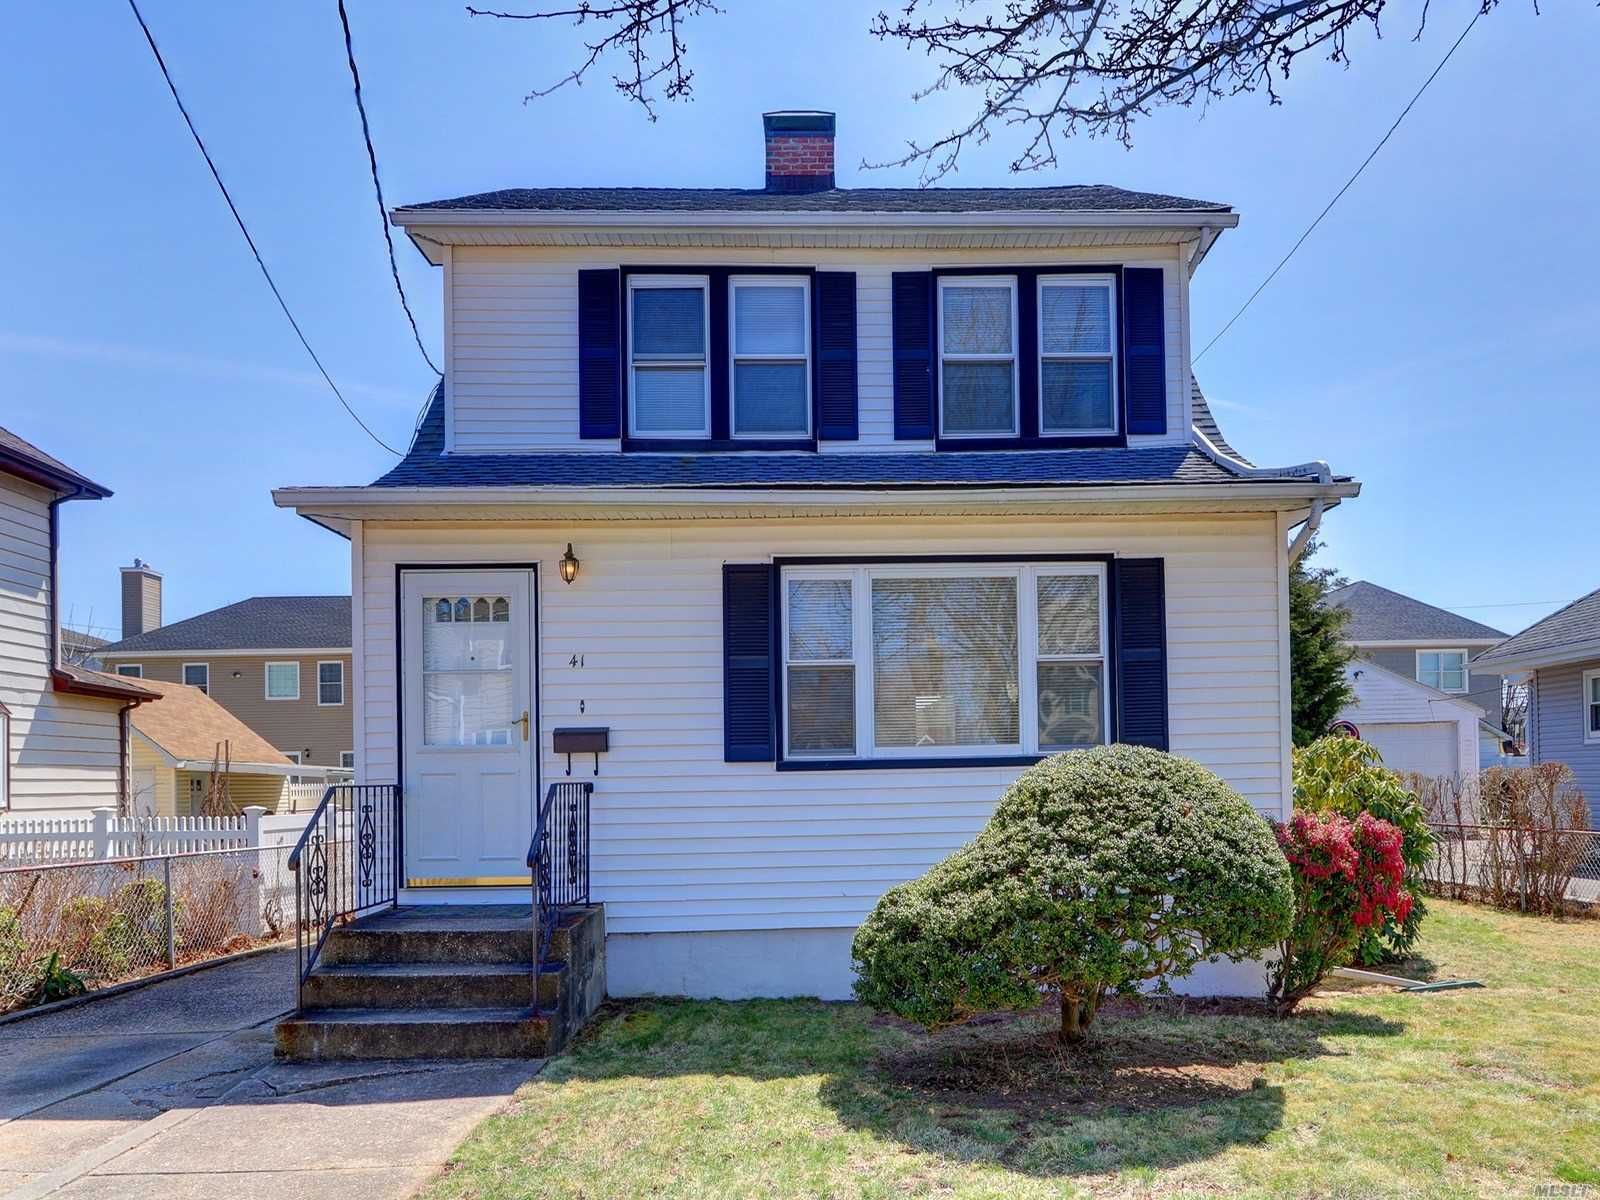 Turn key colonial in prime location with great curb appeal. Newer roof, siding, electric and gas boiler. Large living room with fireplace and new oak floors. Formal dining room with sliders to deck. New kitchen with white cabinets, quartz countertops and stainless steel appliances. Your choice to use as an office or mudroom off of rear entrance. Newer bathrooms too! Hardwood floors thru house. Basement high ceilings partially finished with laundry room. Solar panels on lease $71. a month.